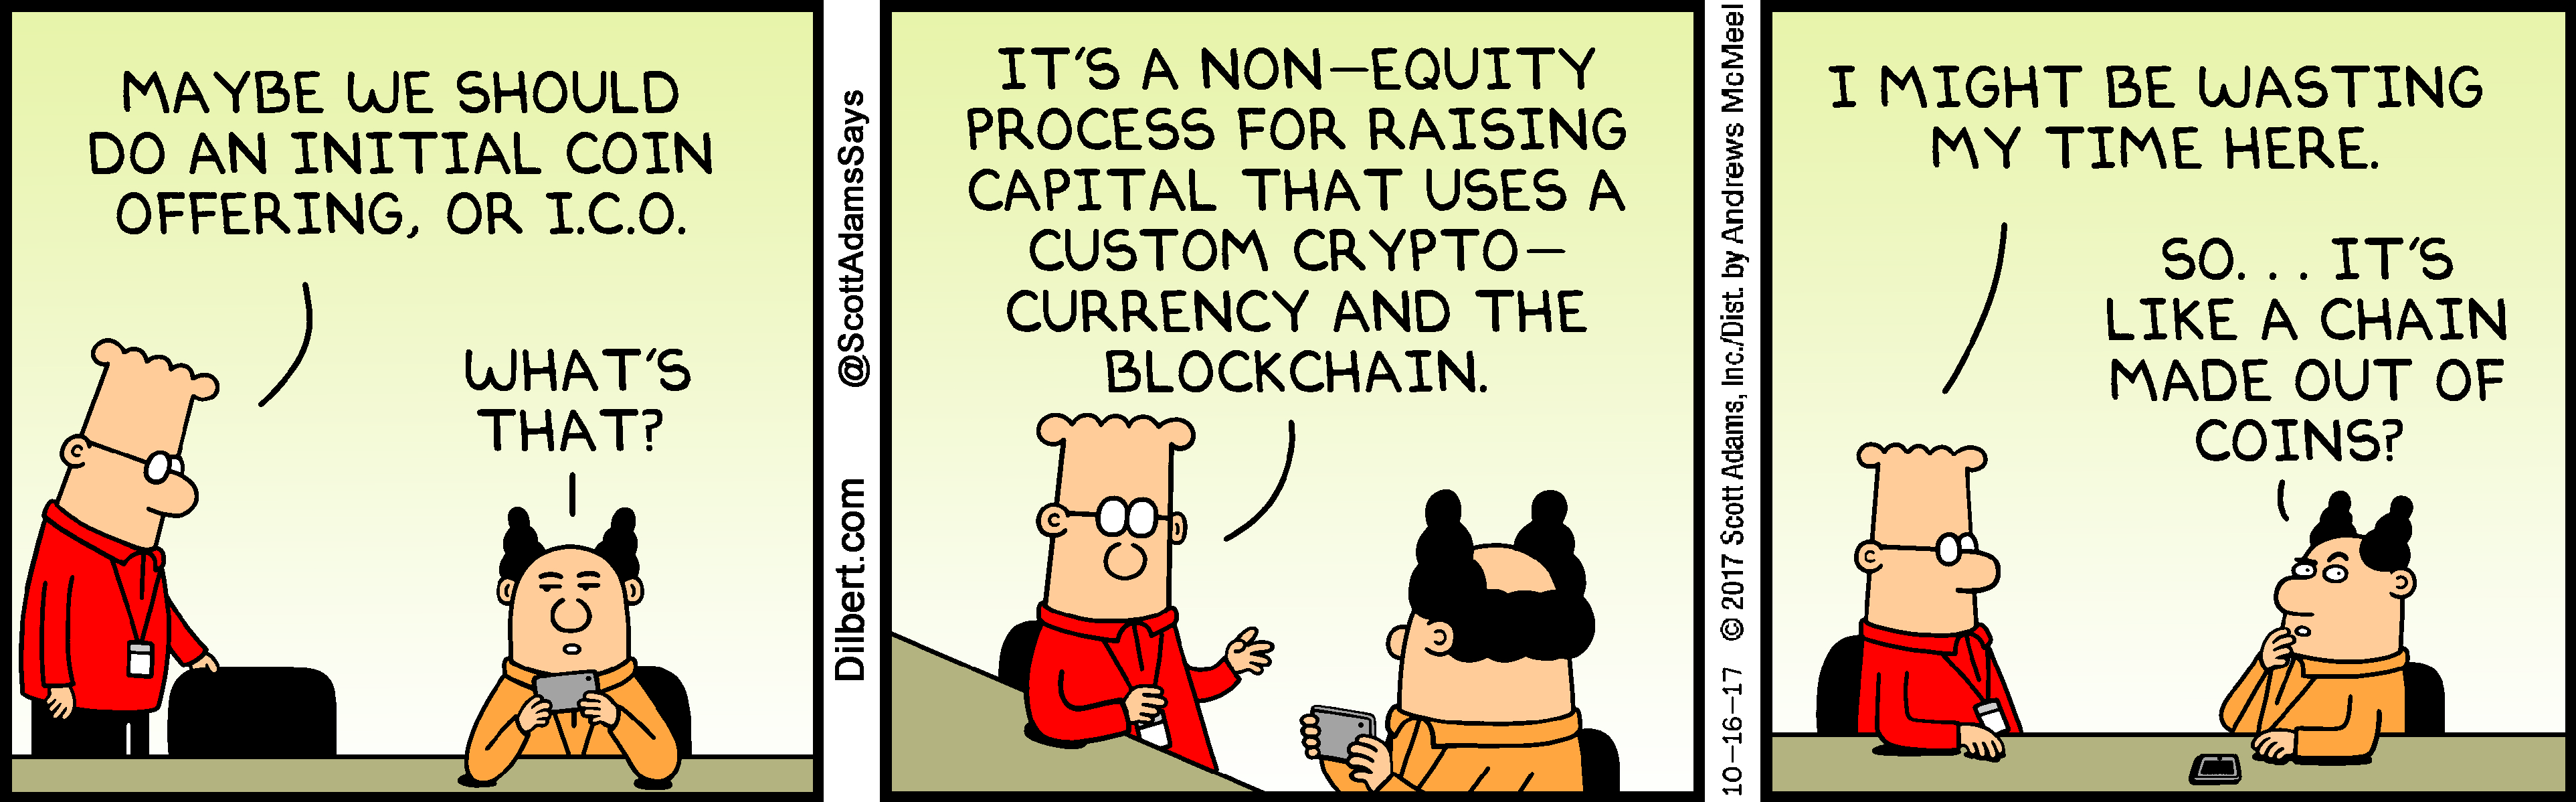 why is dilbert drawn differently